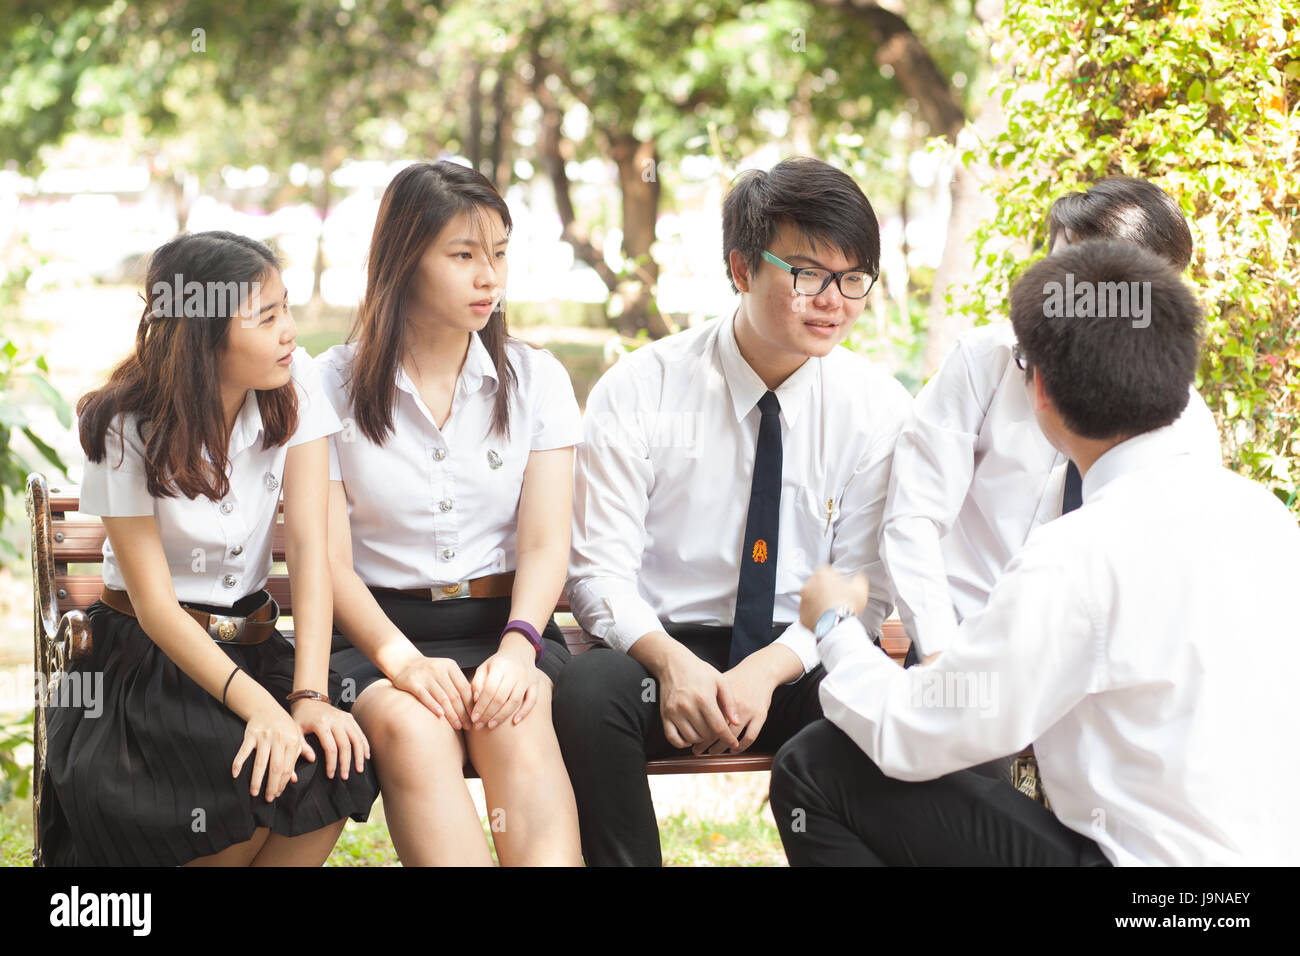 Bangkok, Thailand - November 17, 2015 : King Mongkut's Institute of Technology Ladkrabang is a research and - Stock Image